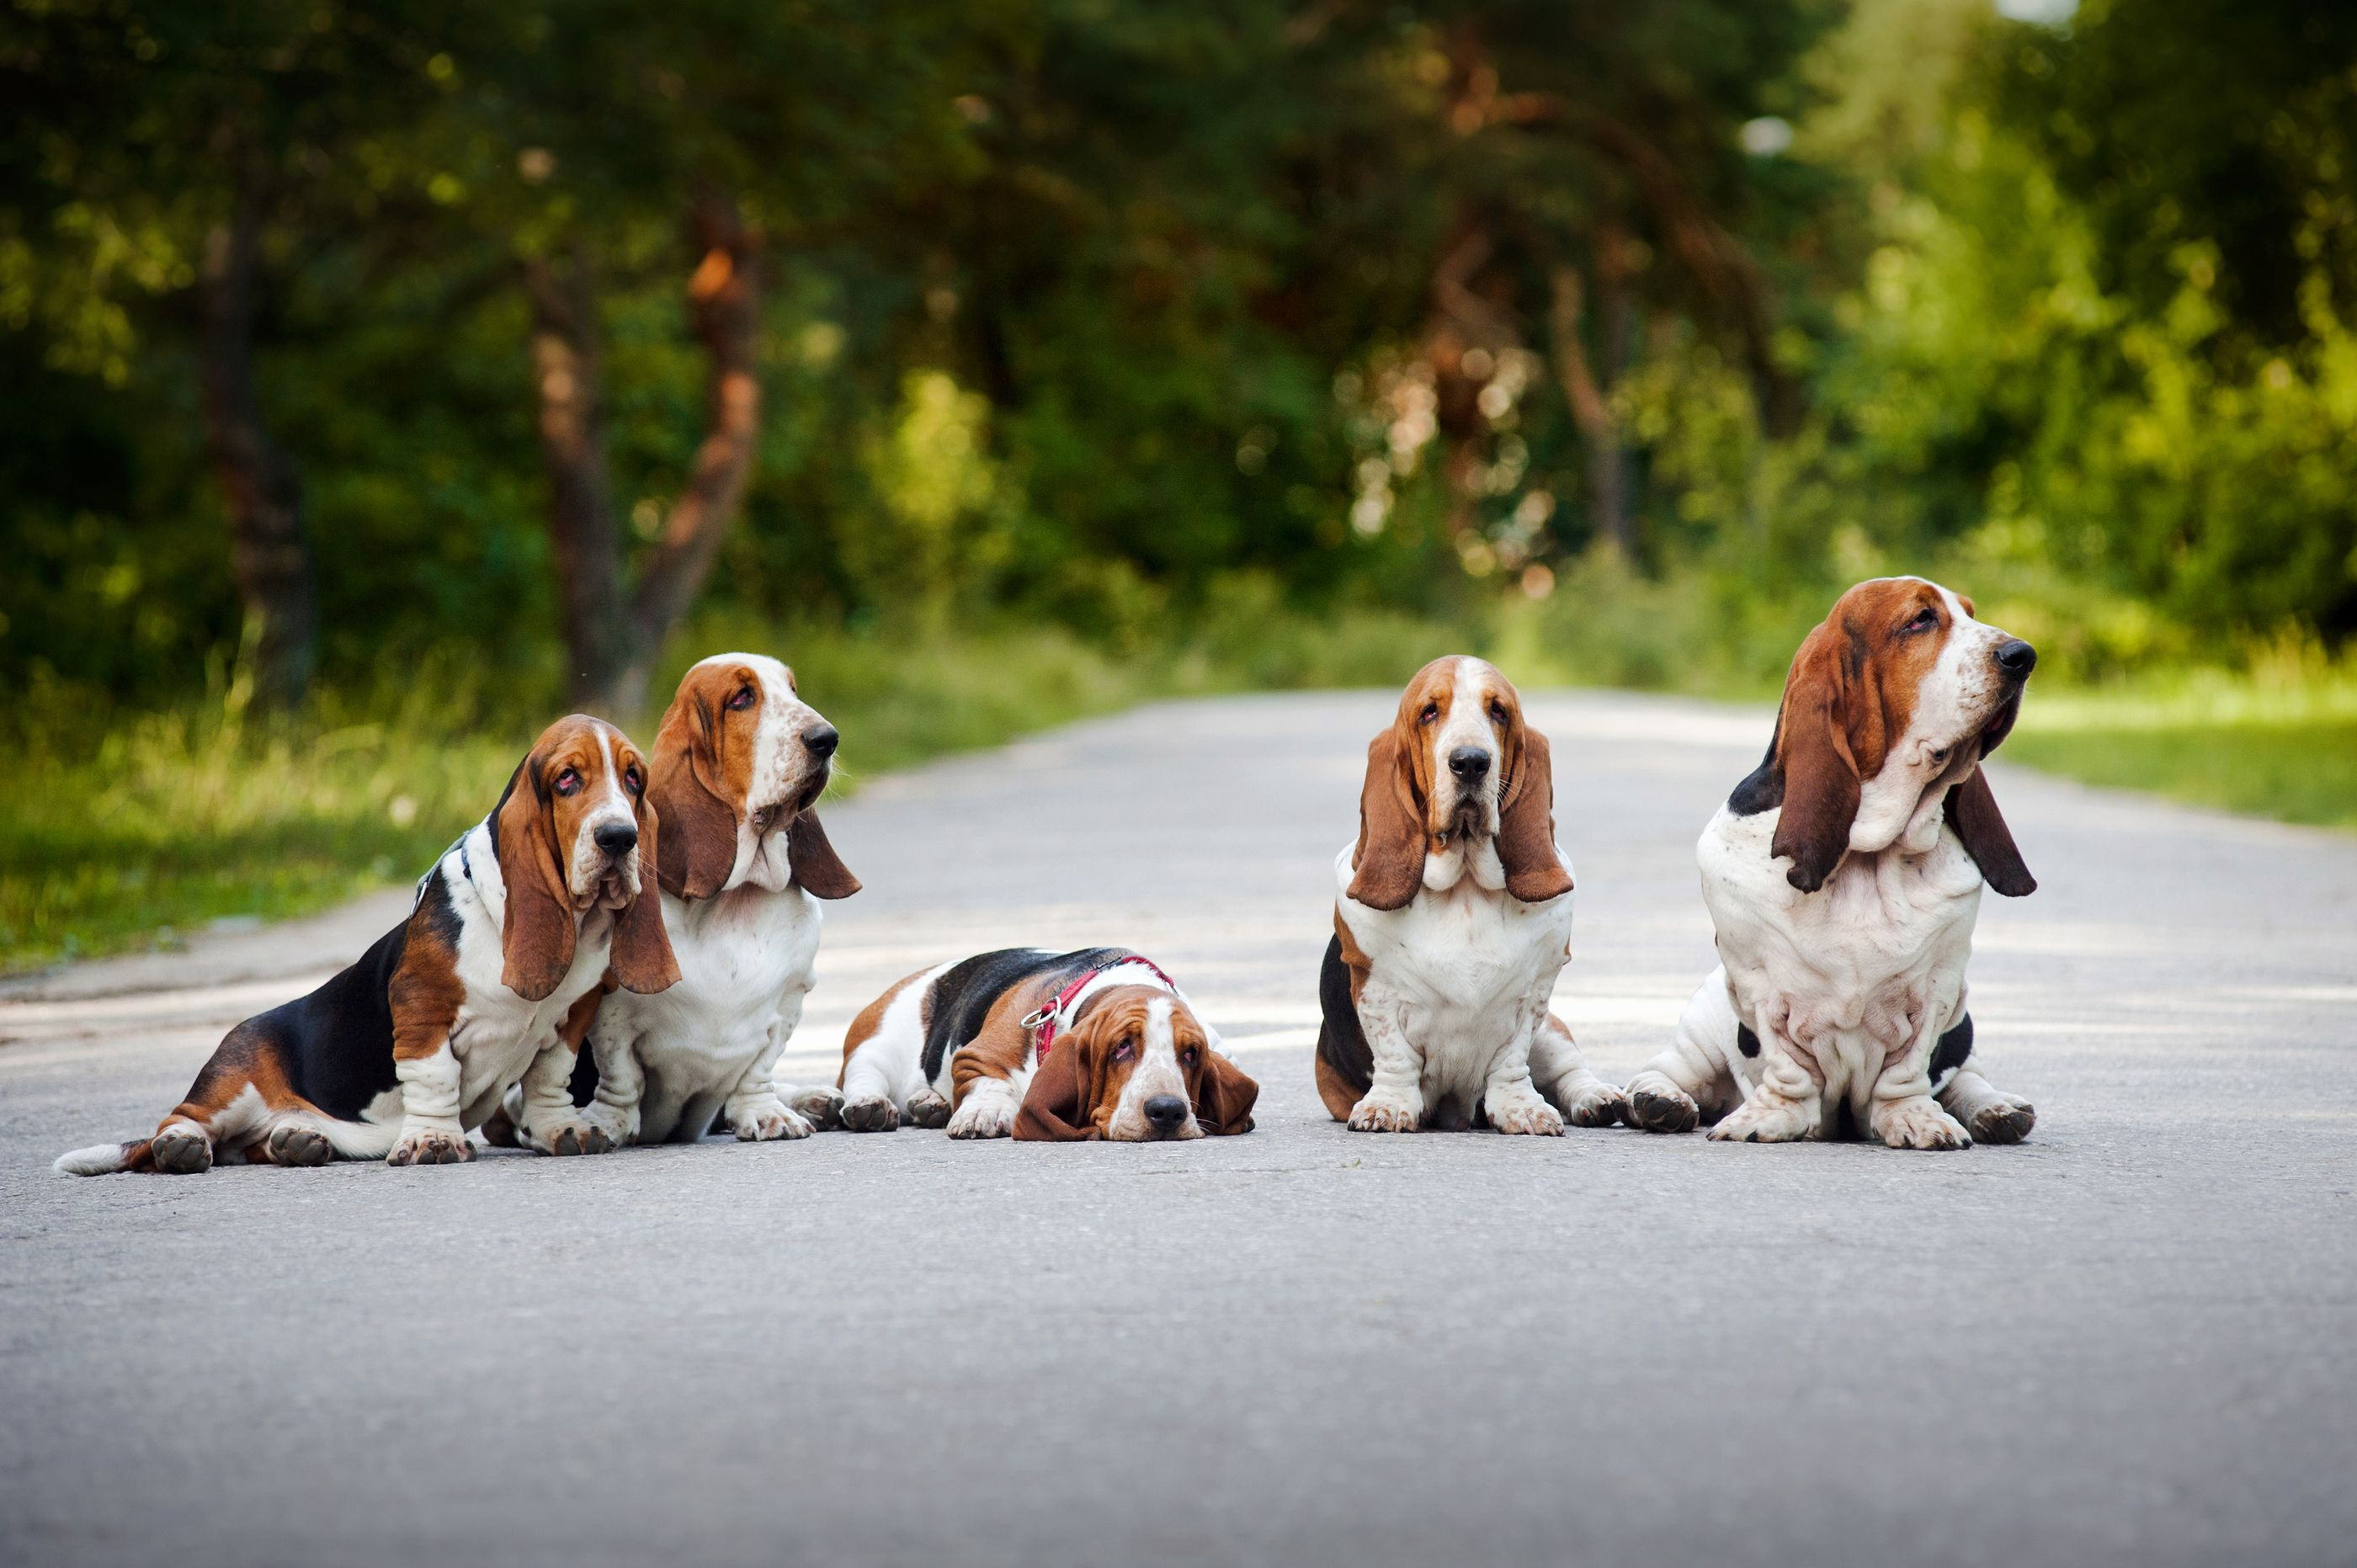 basset hound wallpaper Family Basset Hound sitting on the road 2800x1863